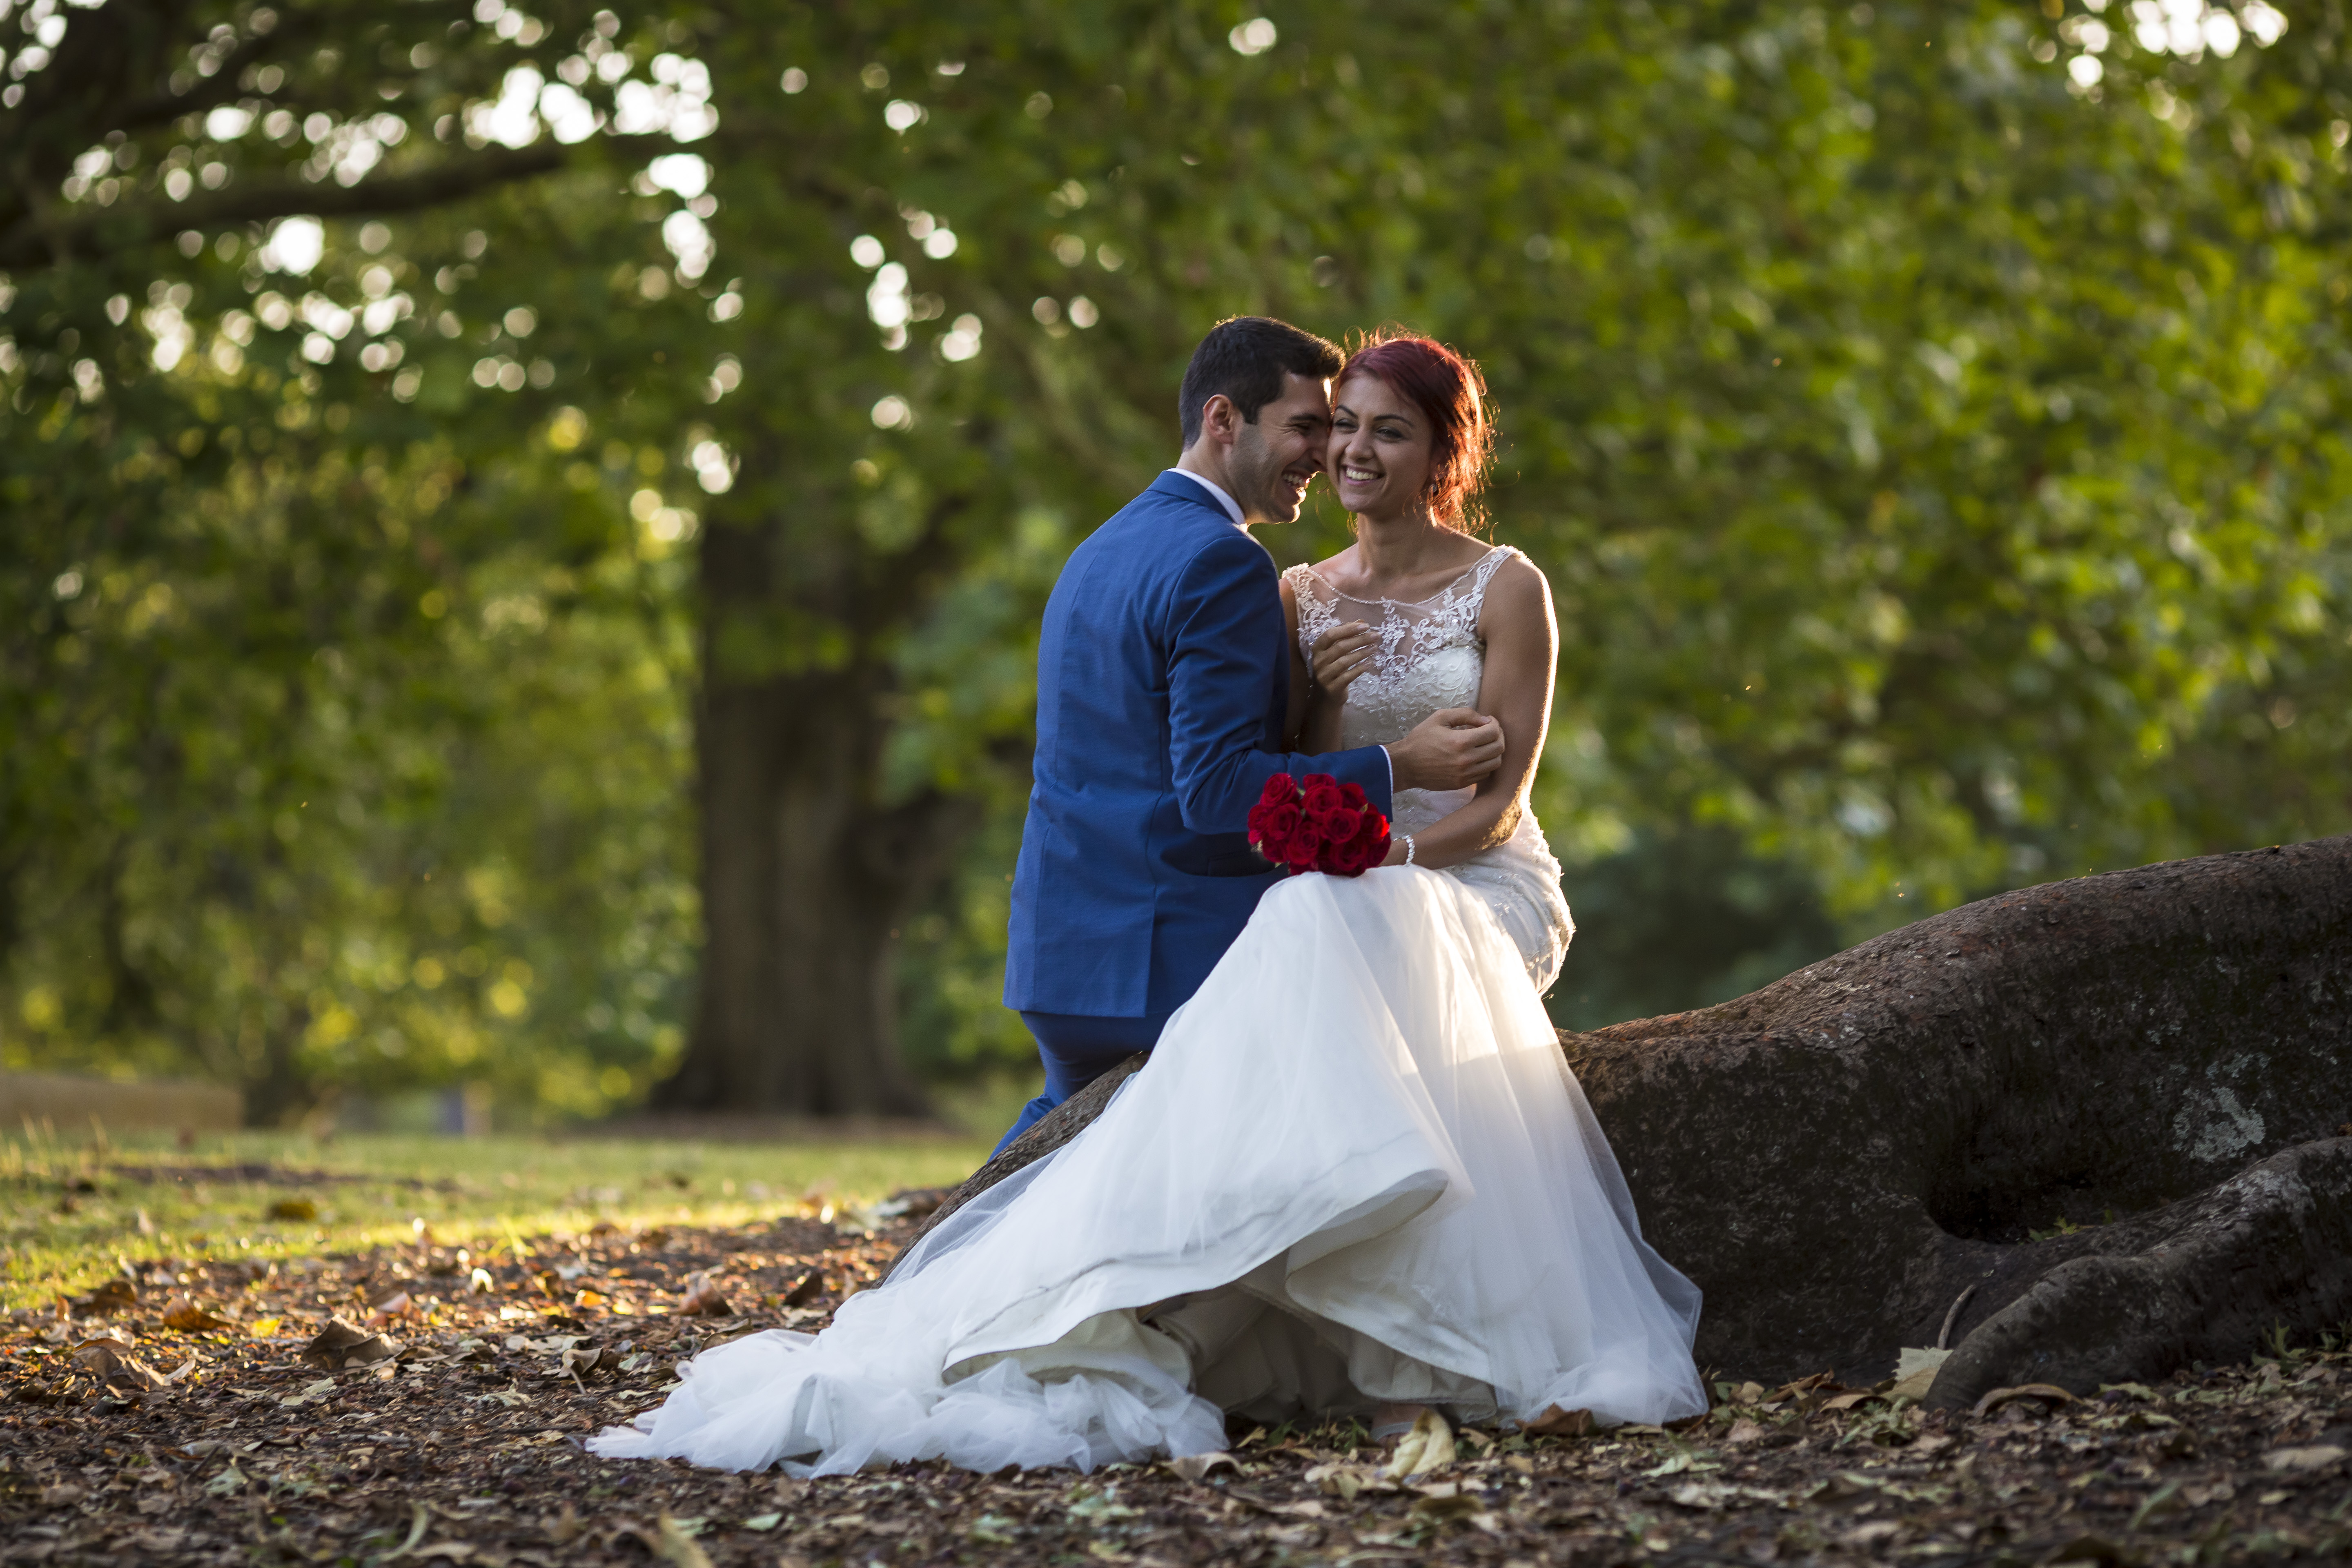 Bridal Photography in Aucklan Domain